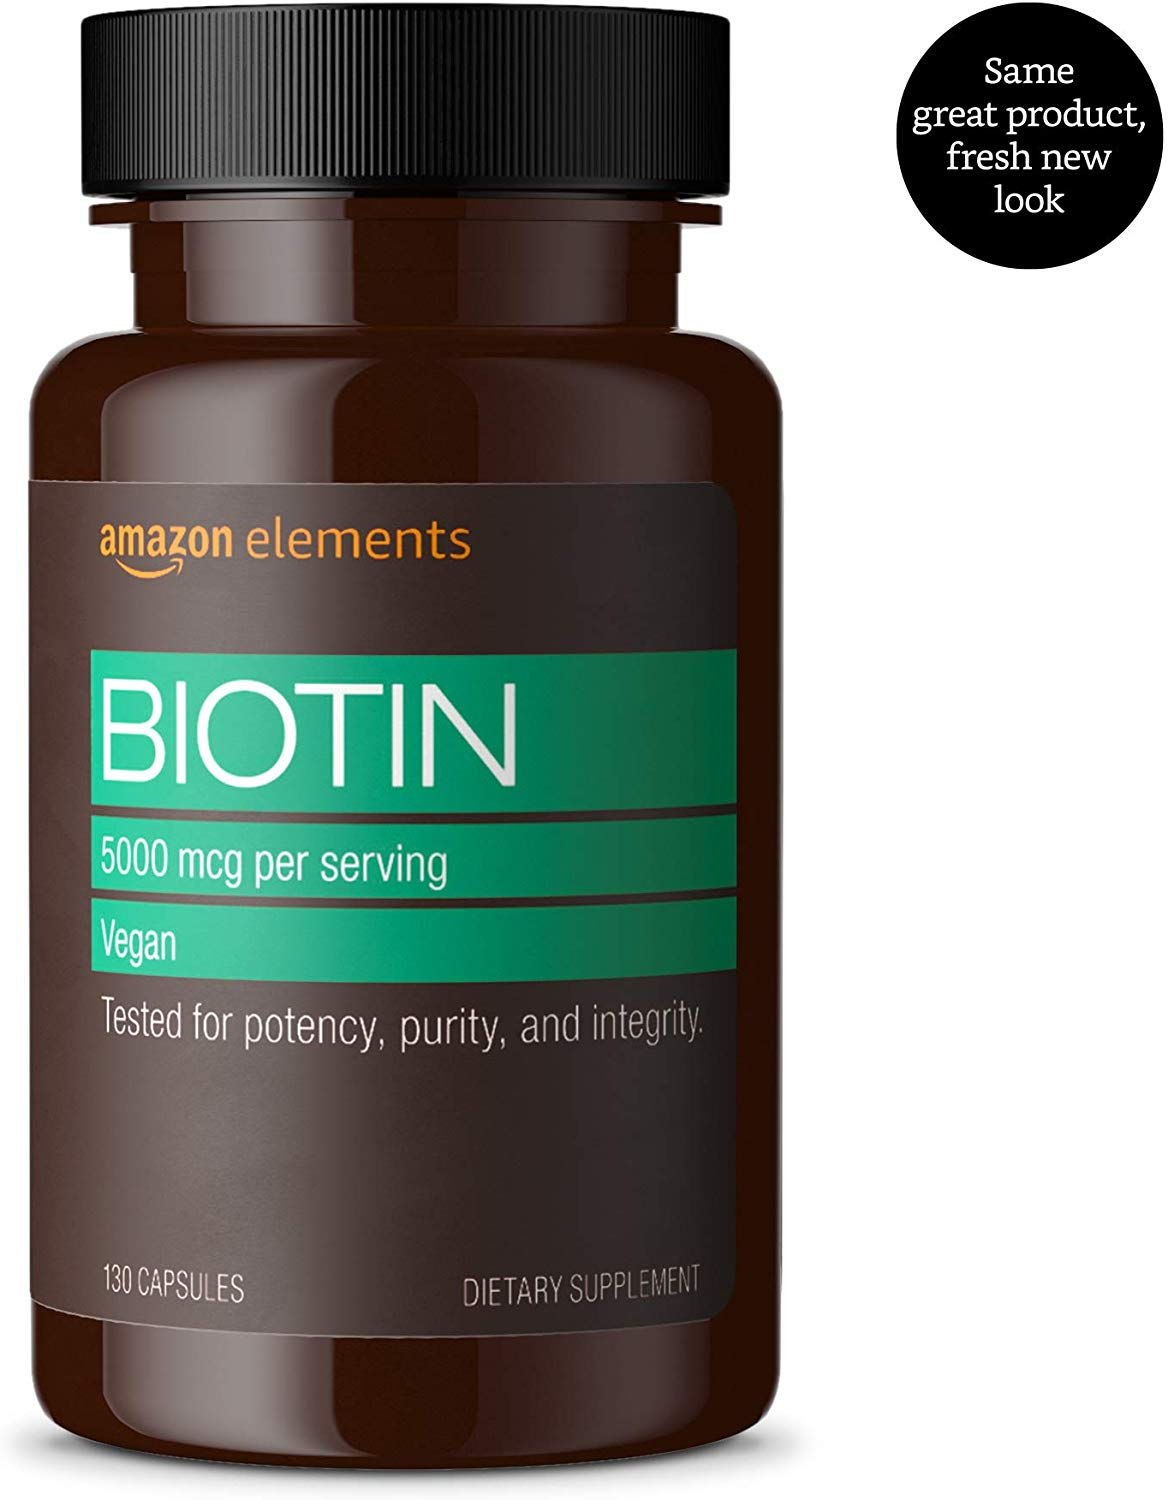 Amazon Elements Vegan Biotin, 5,000 mcg